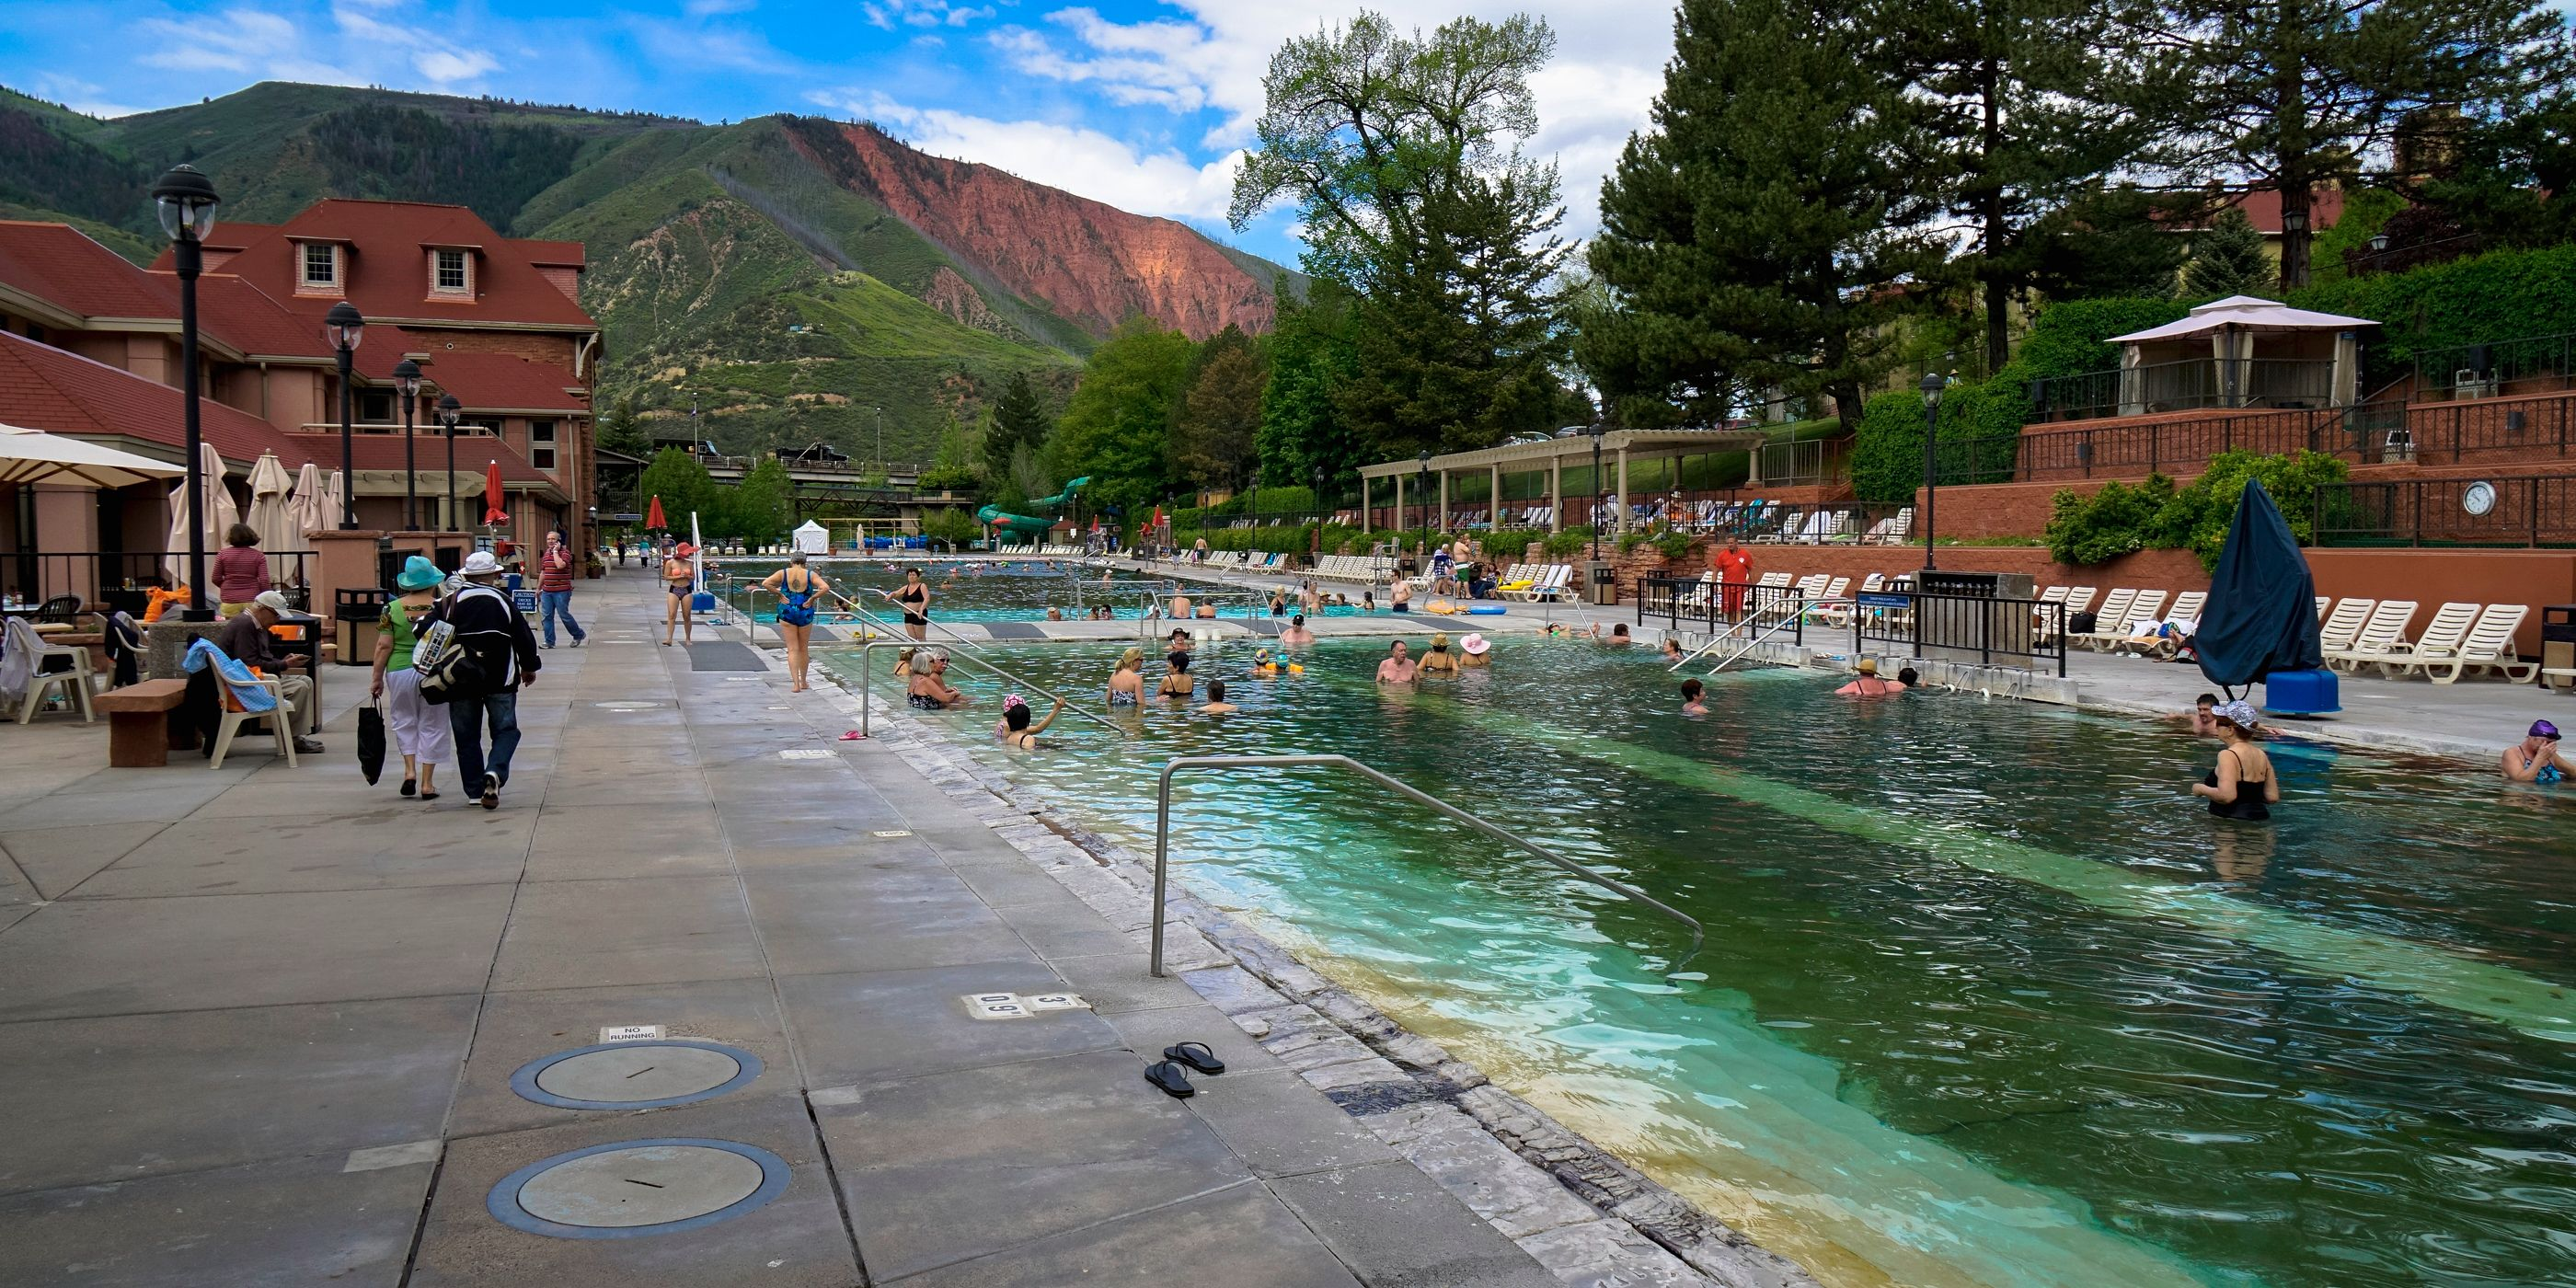 Glenwood Hot Springs — Glenwood Springs, Colorado